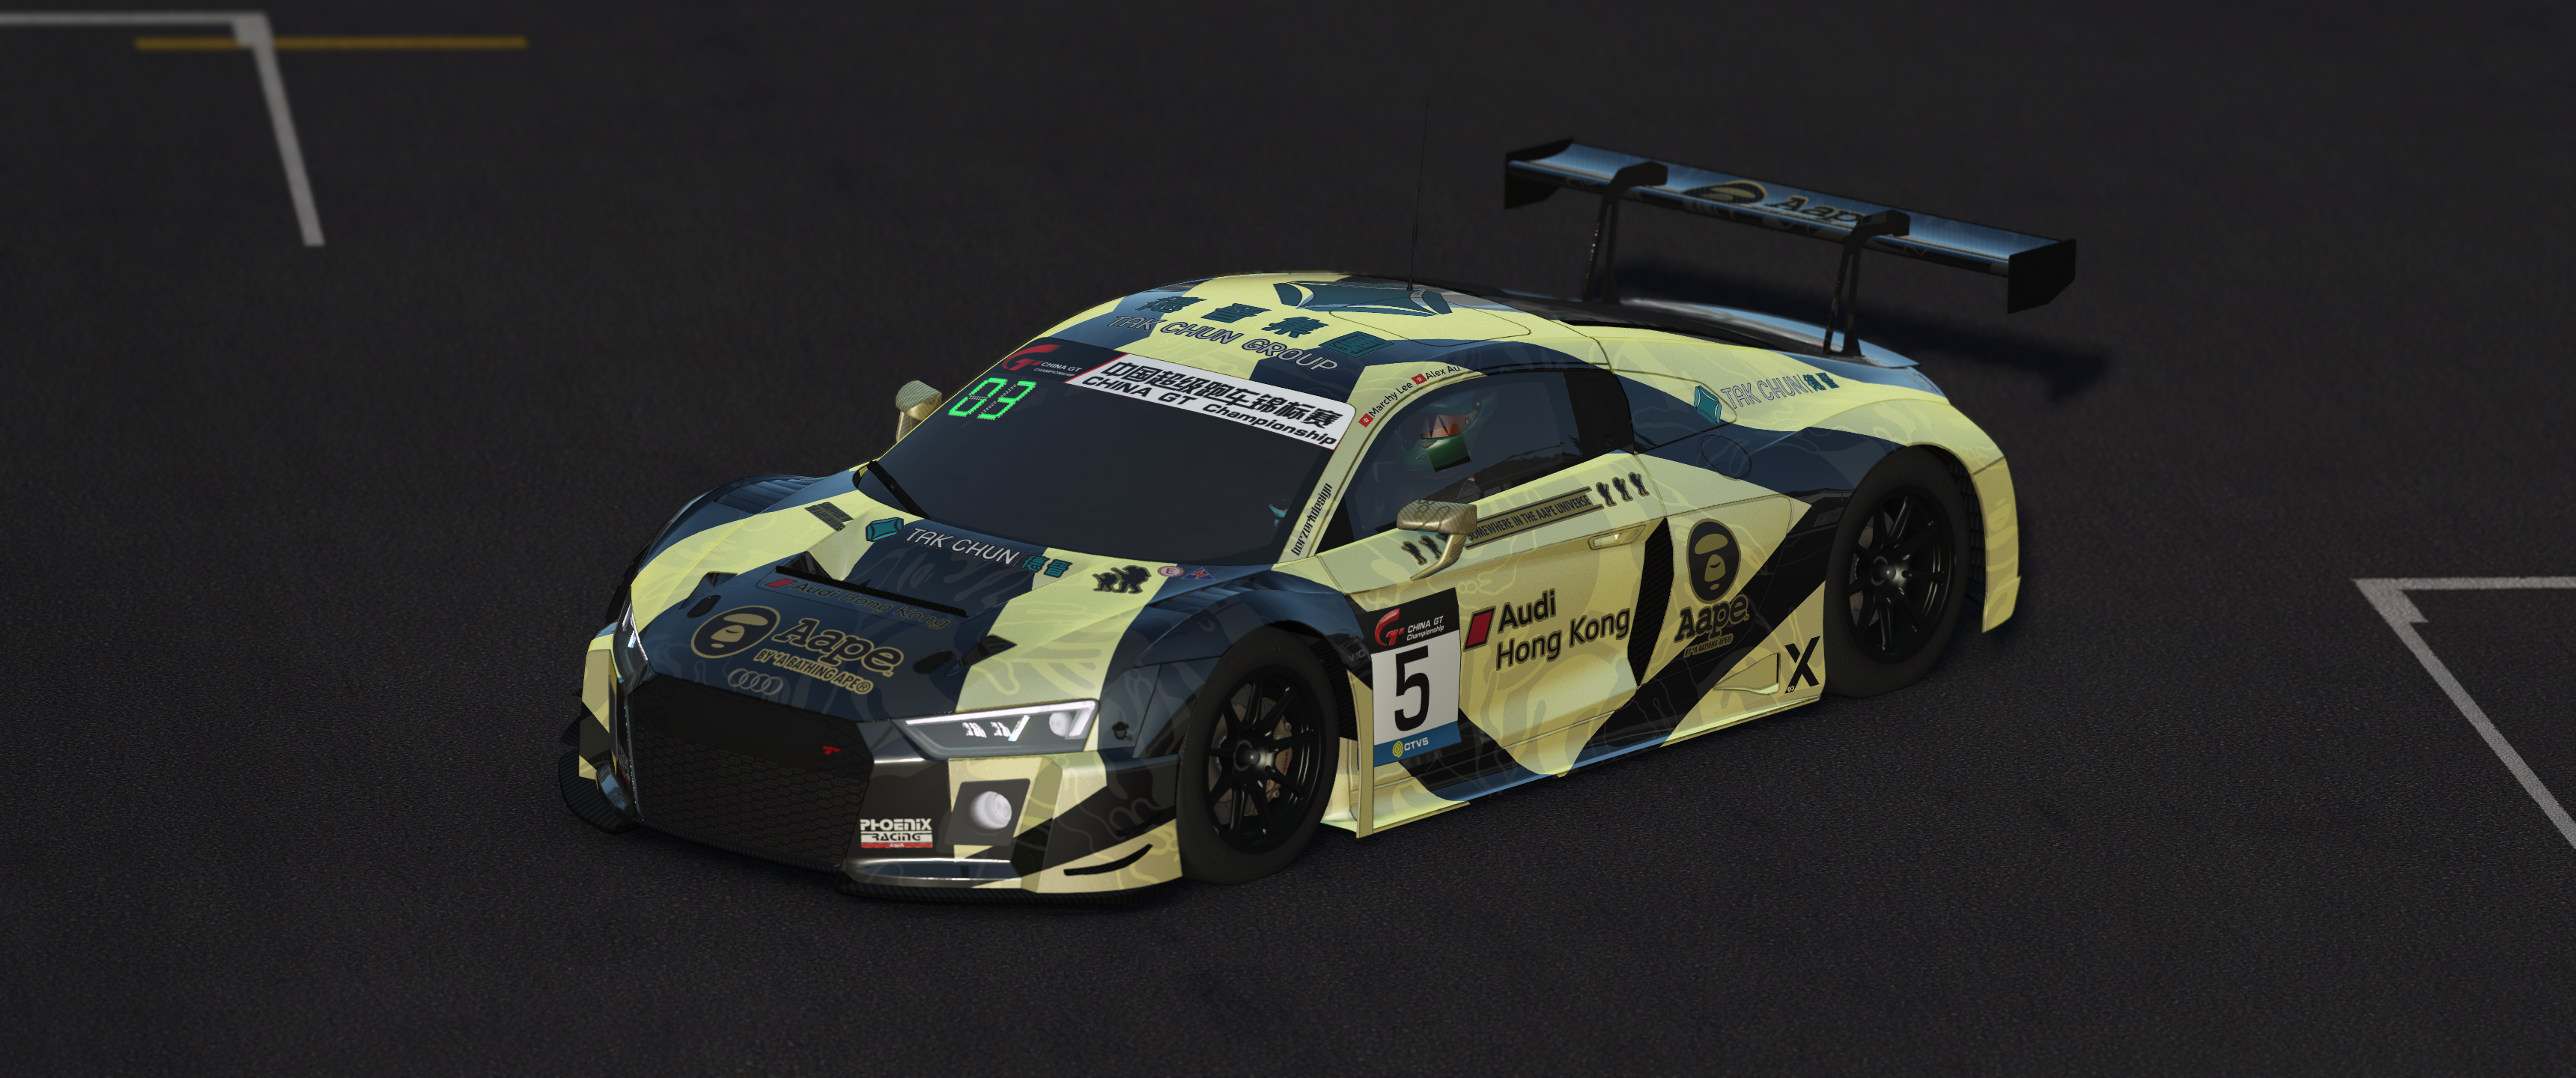 rFactor2 2019-03-02 02-01-43-87.png